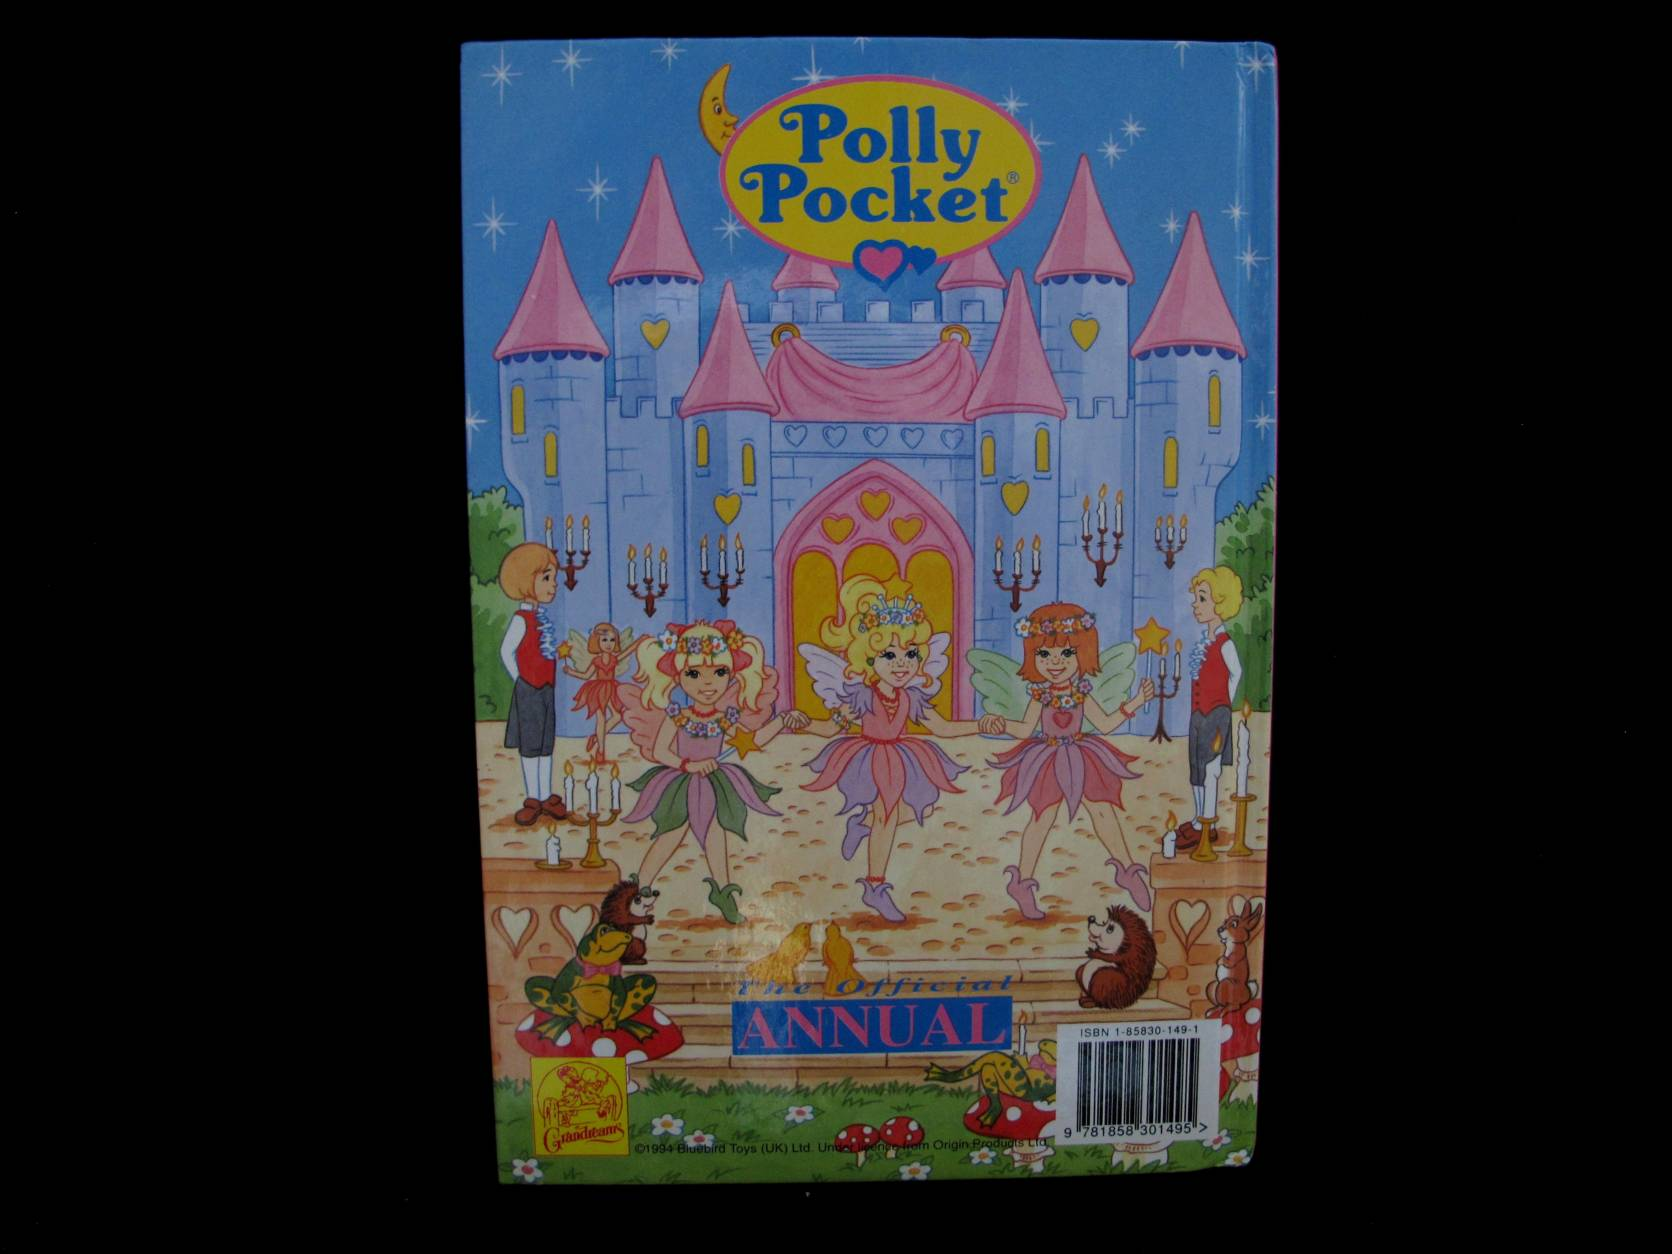 1995 Polly Pocket Annual (2)